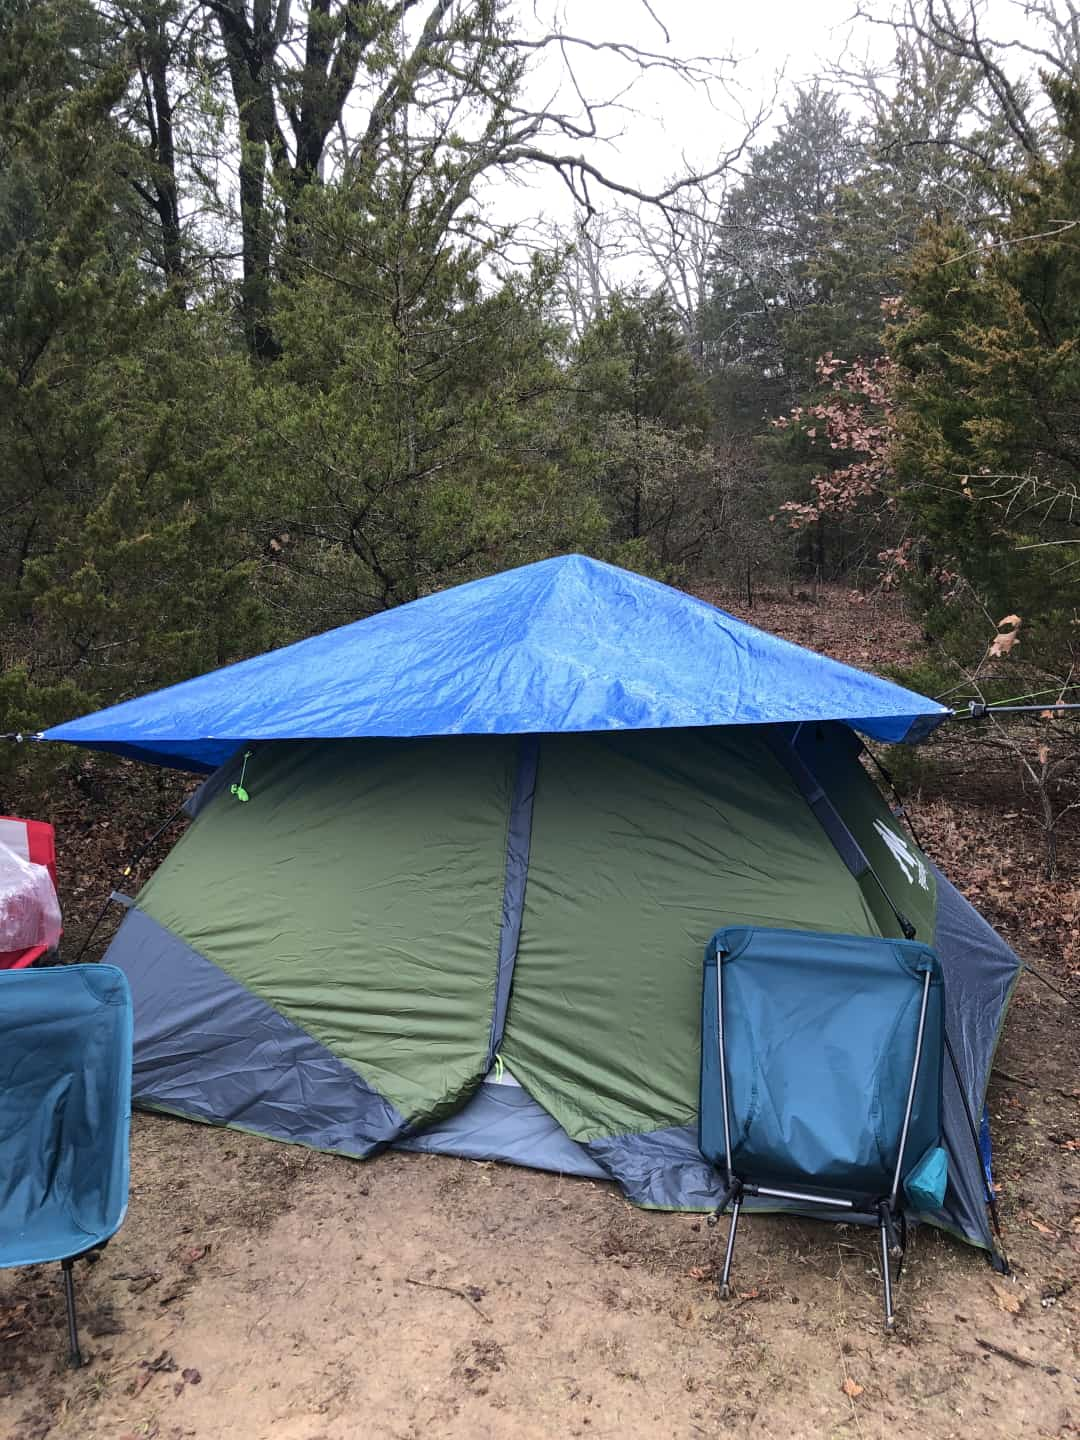 A pop-tent with an additional tarp tied over the tent to prevent rain from hitting the tent